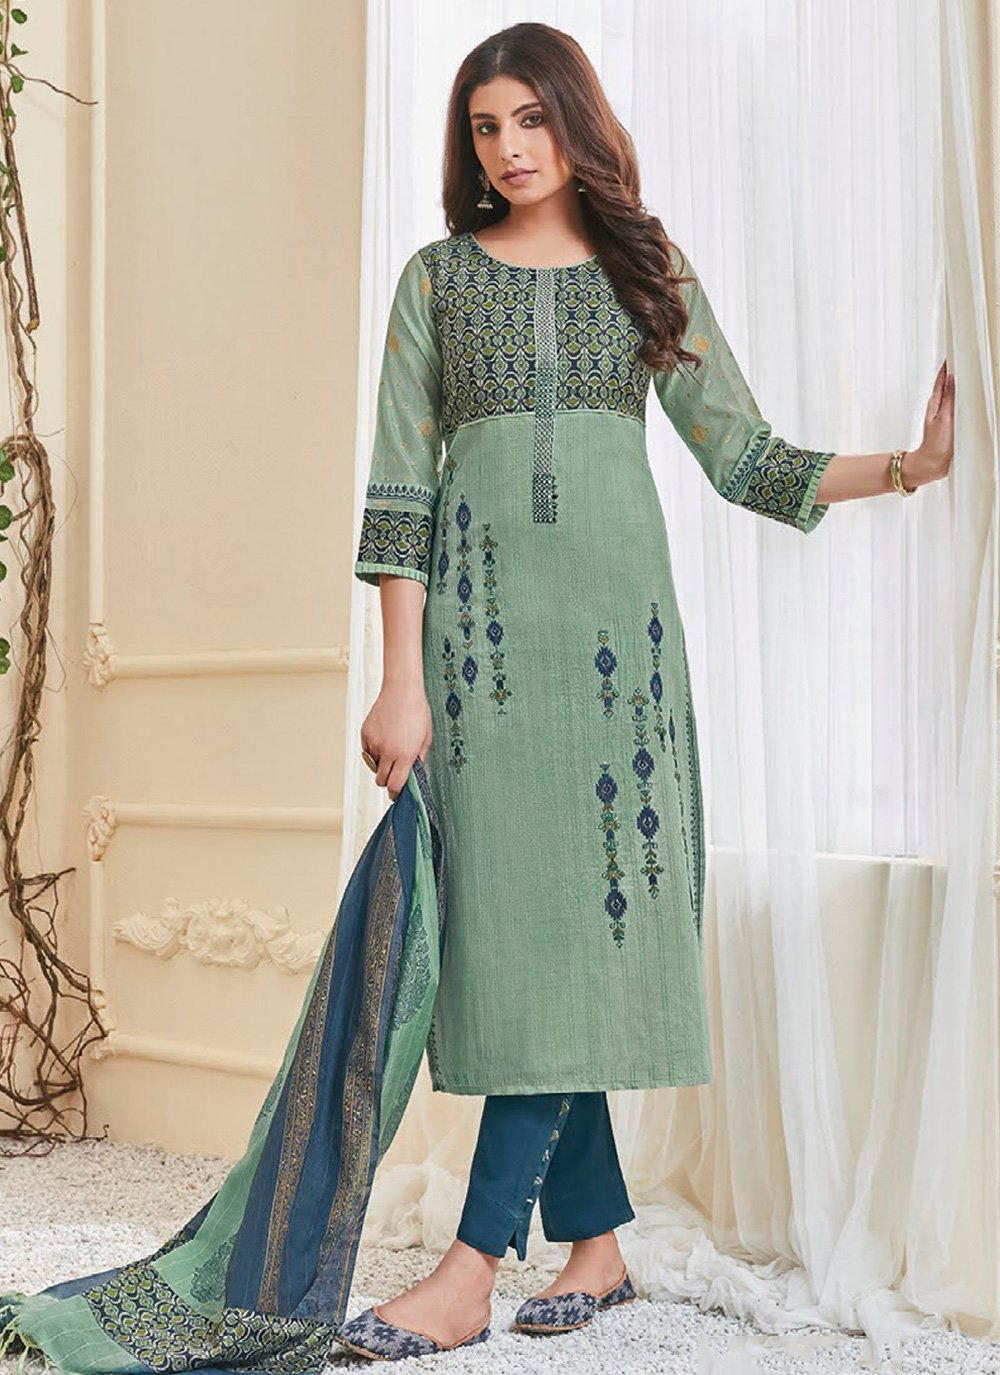 Polly Cotton Multi Colour Embroidered Salwar Kameez